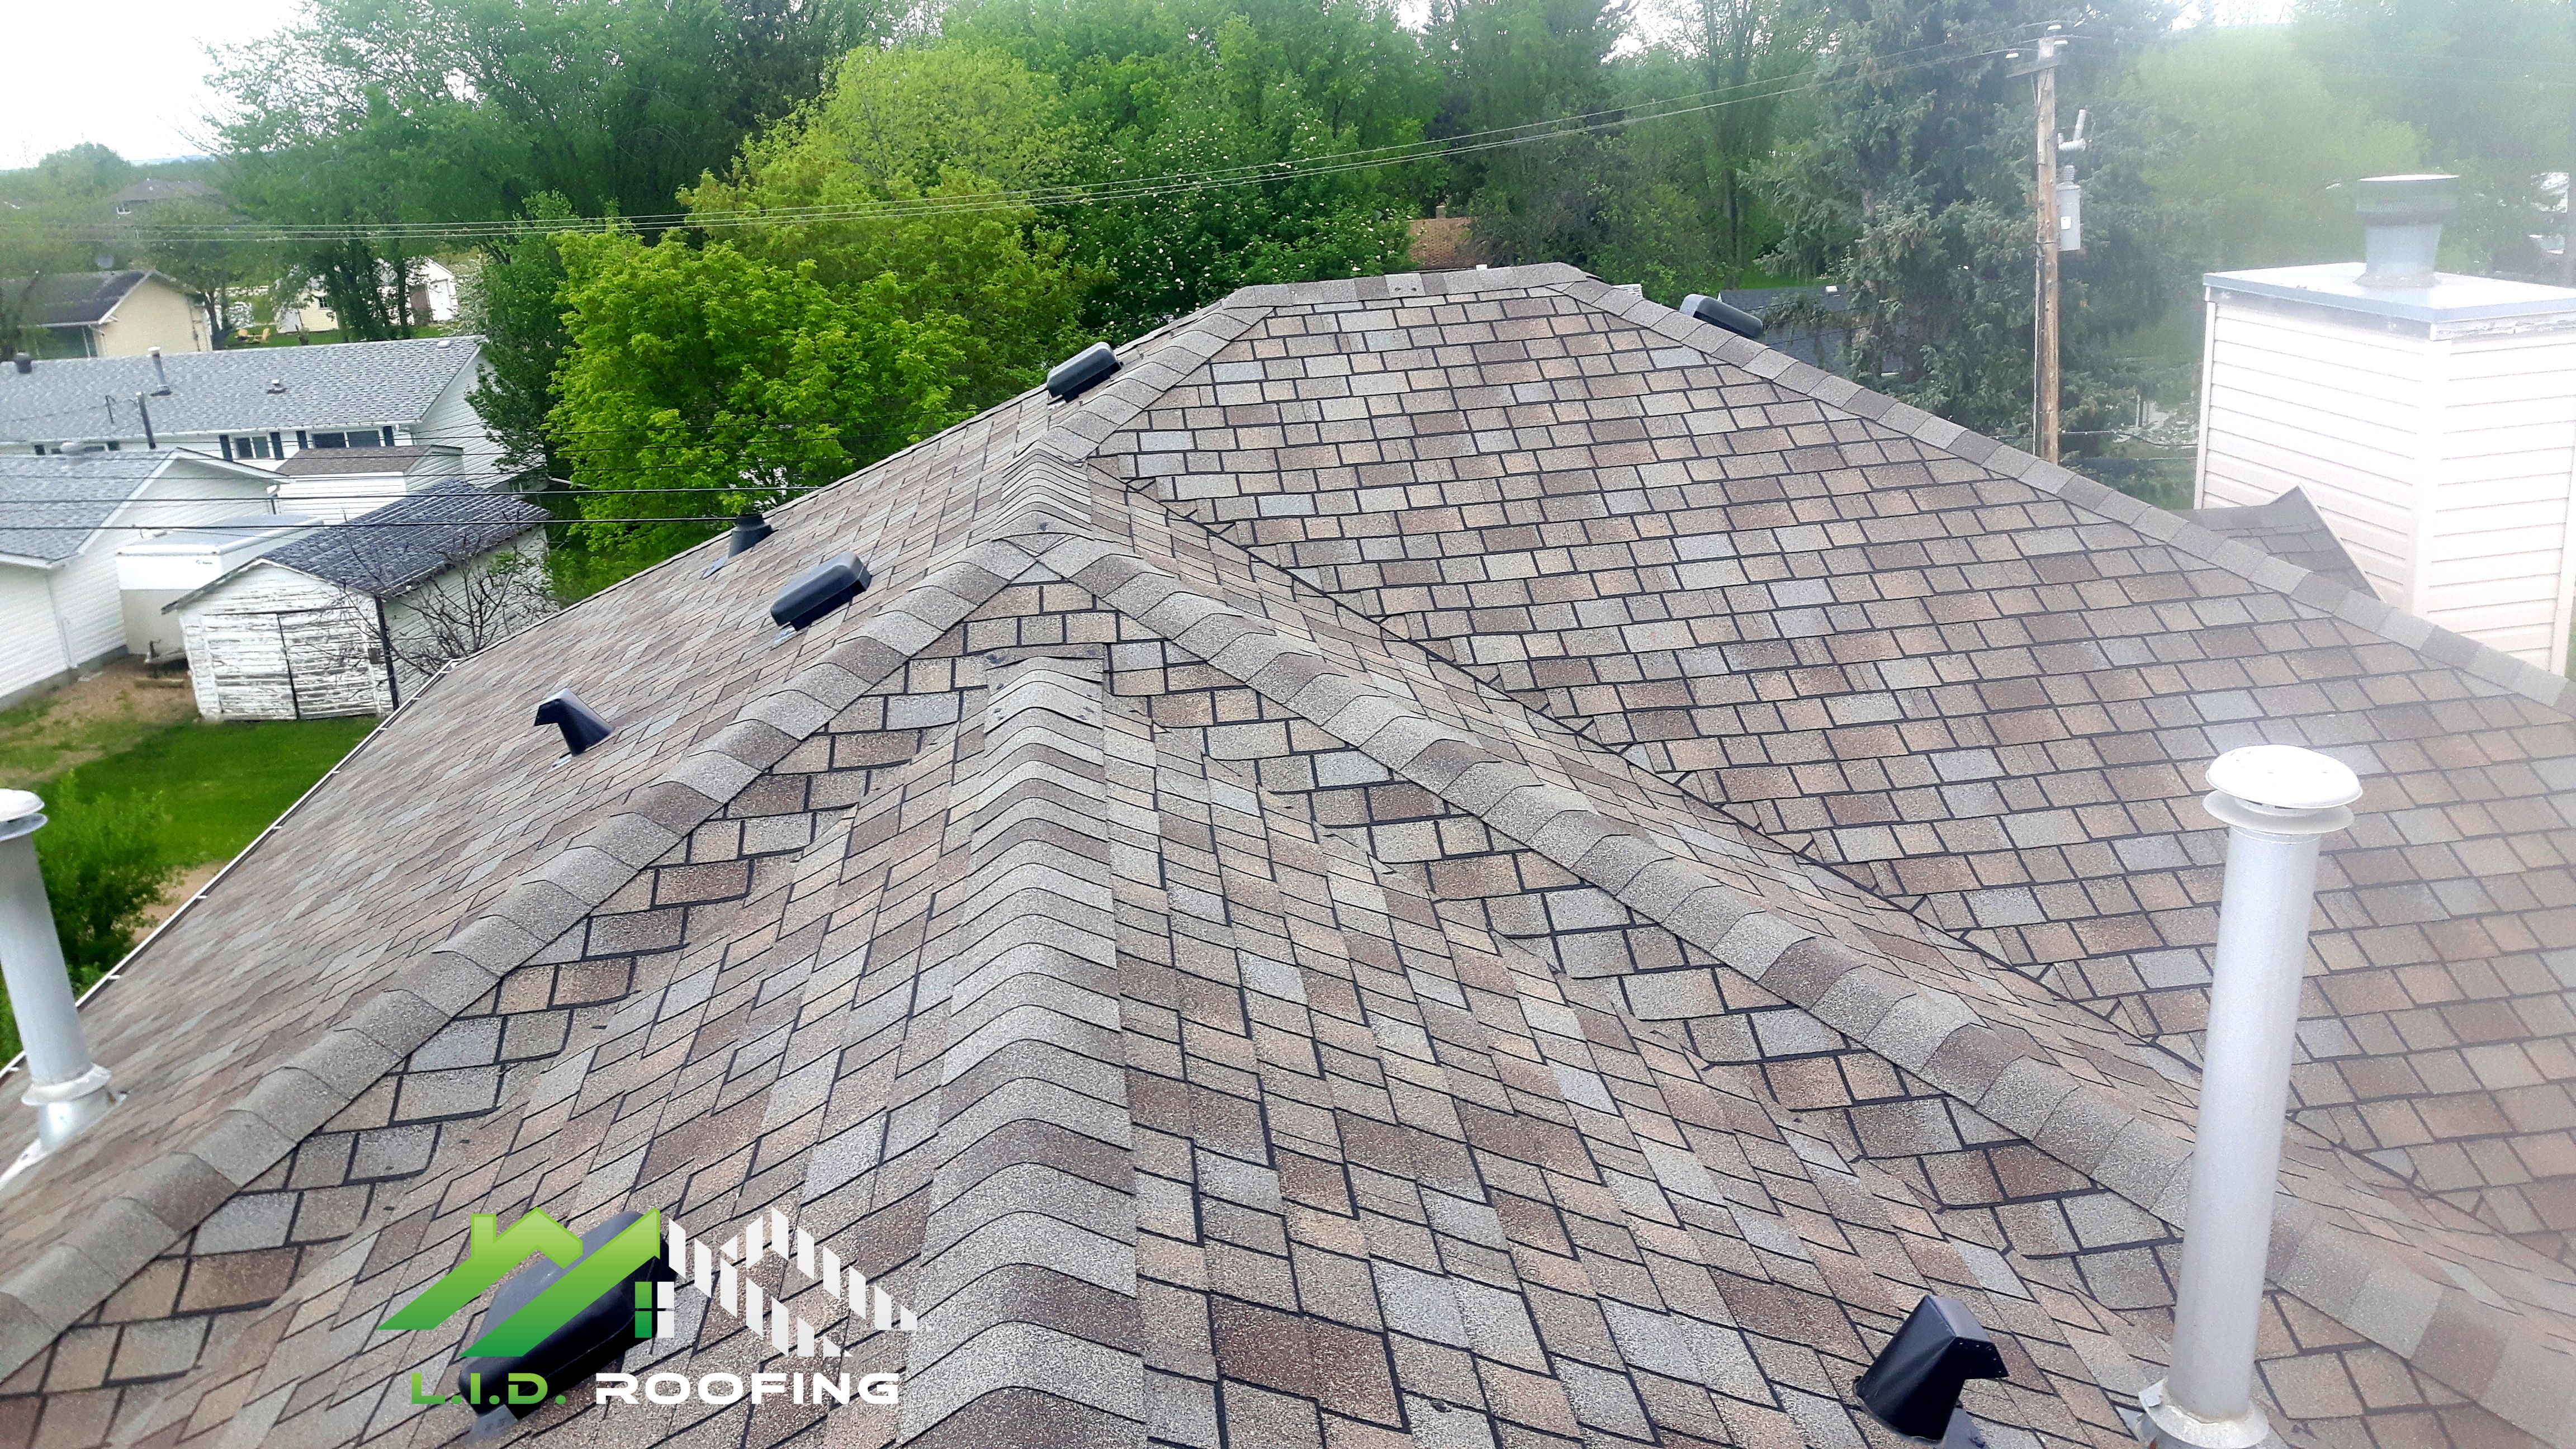 100 Family Owned Locally Operated Licensed Competitive Pricing Quality Guaranteed 20 Year Workmanship Warra Roofing Contractors Roofing Services Free Quotes